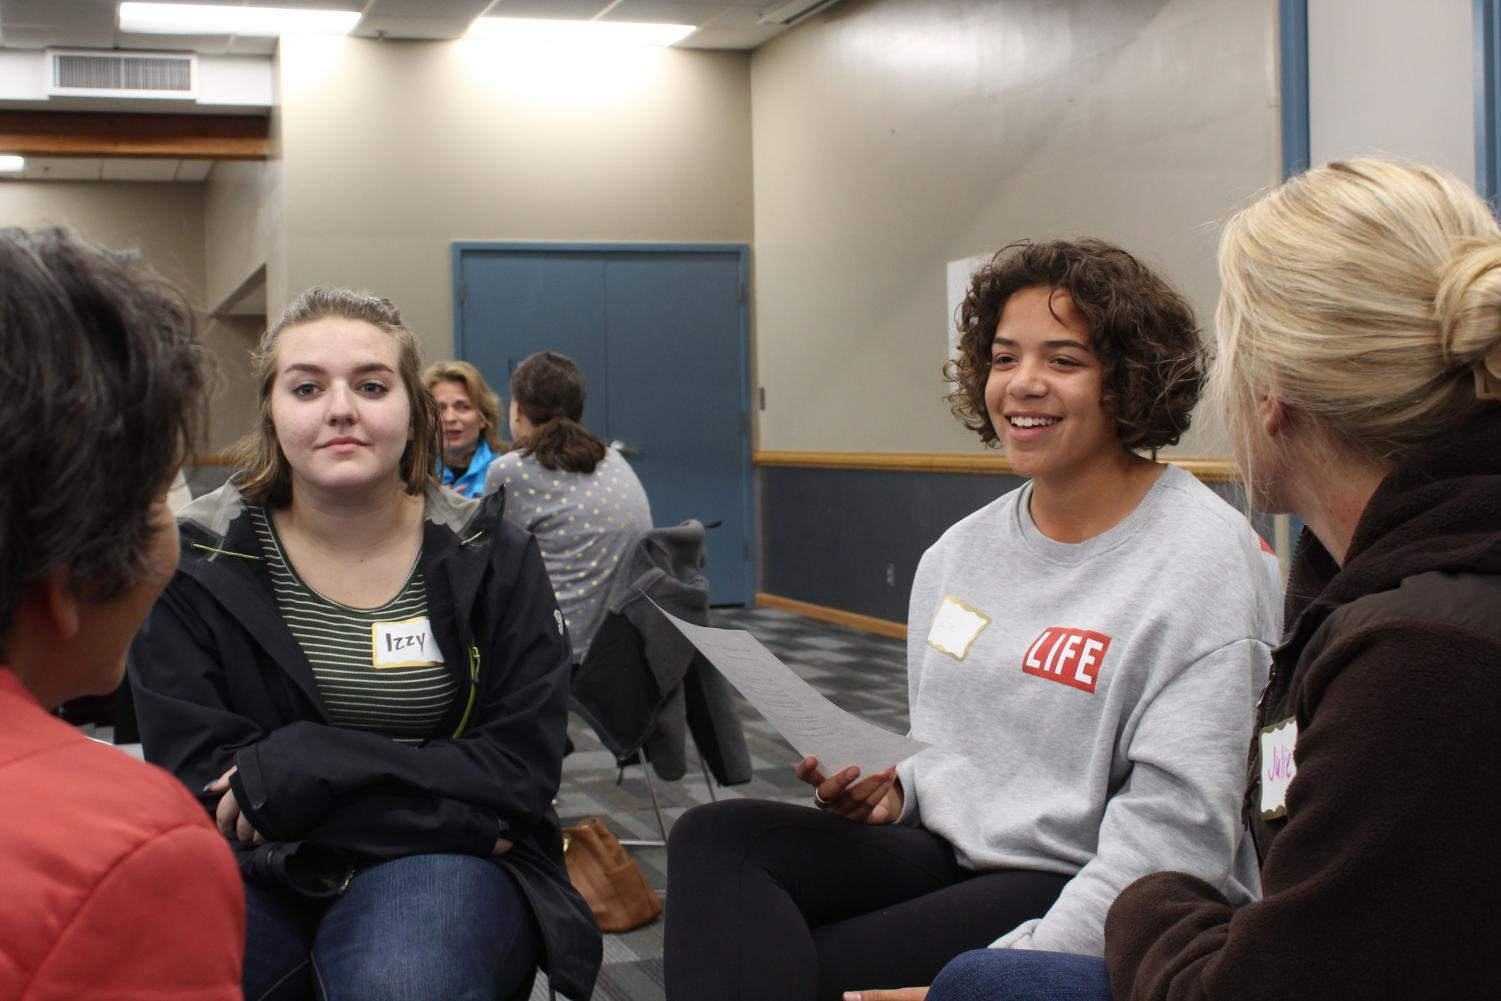 Juniors Izzy Kanne and Zoe Younger participate in a community discussion led by the Community Education Advisory Council Oct. 11 at the Rec Center. As members of SOAR, they attended this event to discuss racial issues in St. Louis Park.